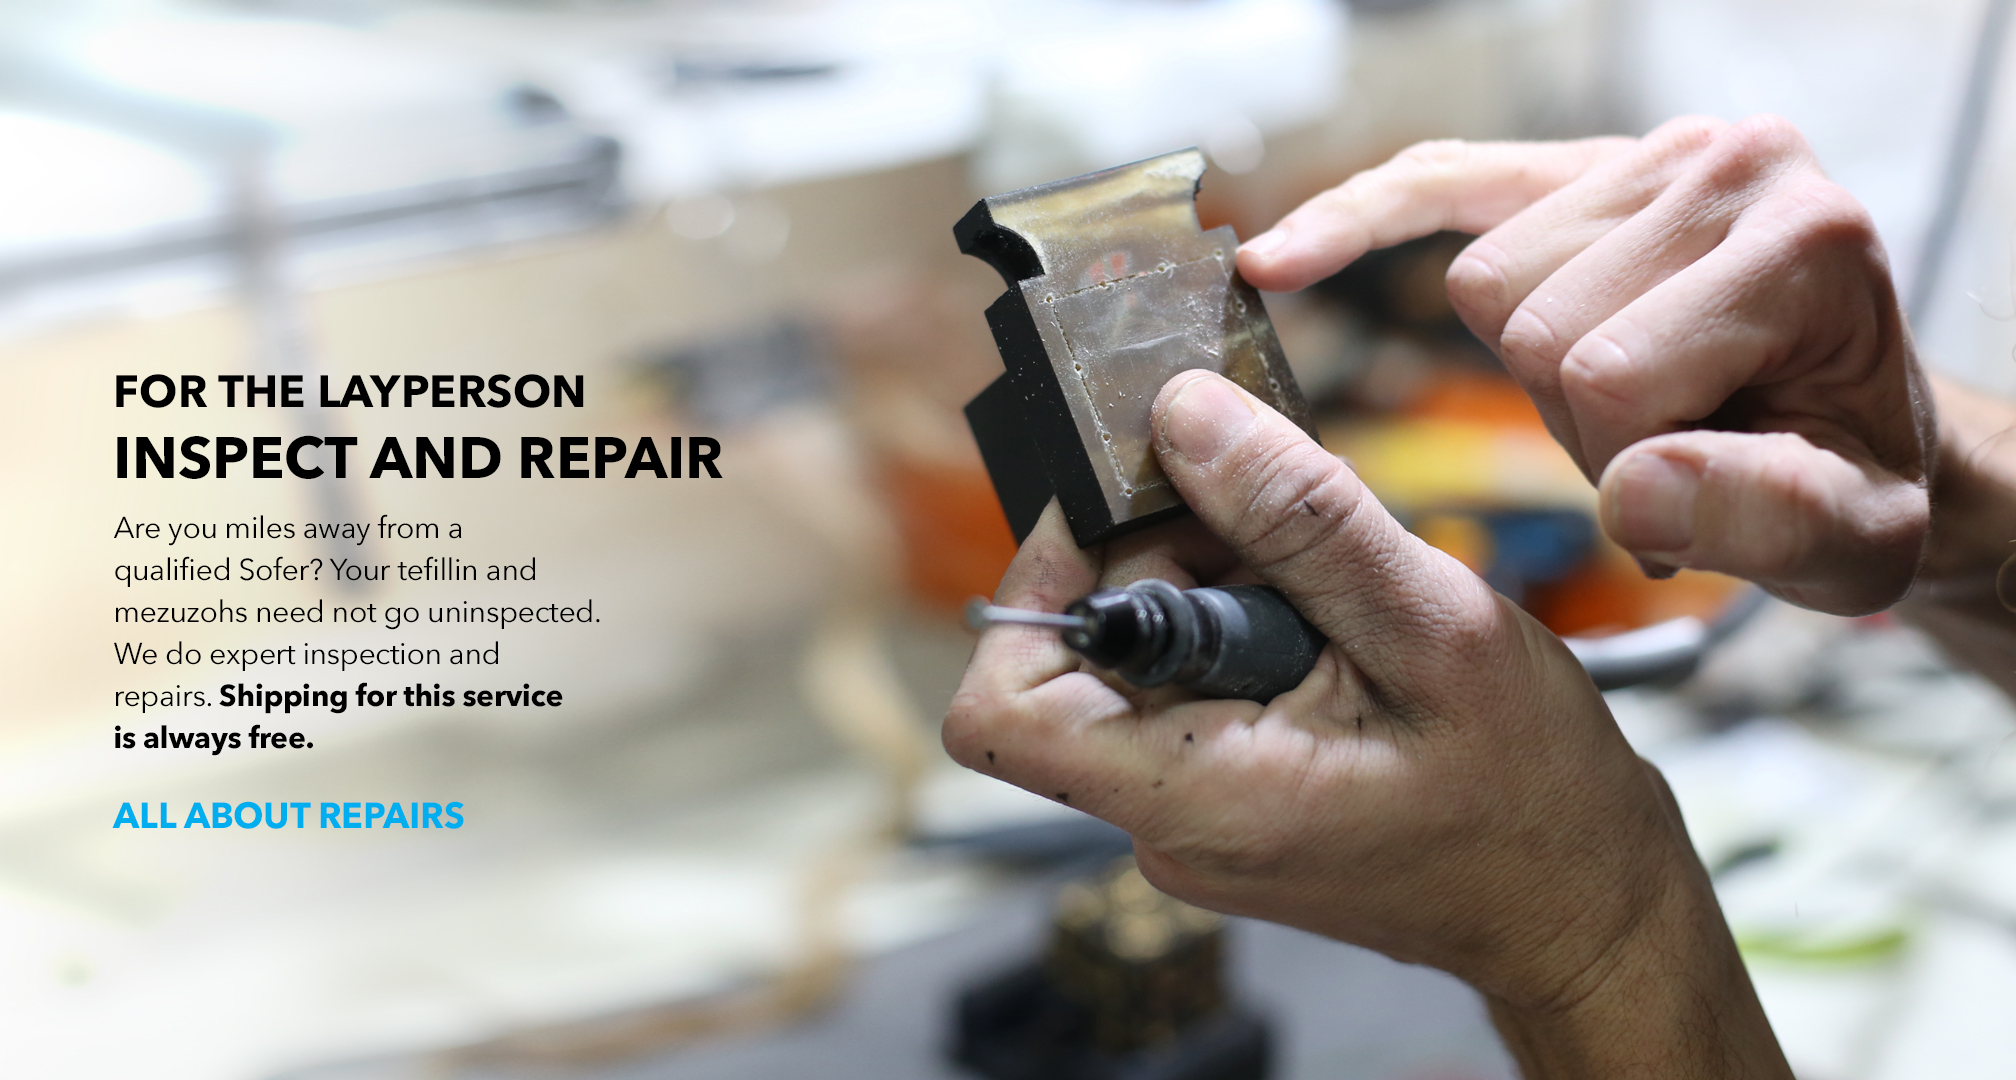 For the lay person, we do inspection and repairs. Are you miles away from a qualified Sofer? Your tefillin and mezuzohs need not go uninspected. We do expert inspection and repairs. Shipping for this service is always free.